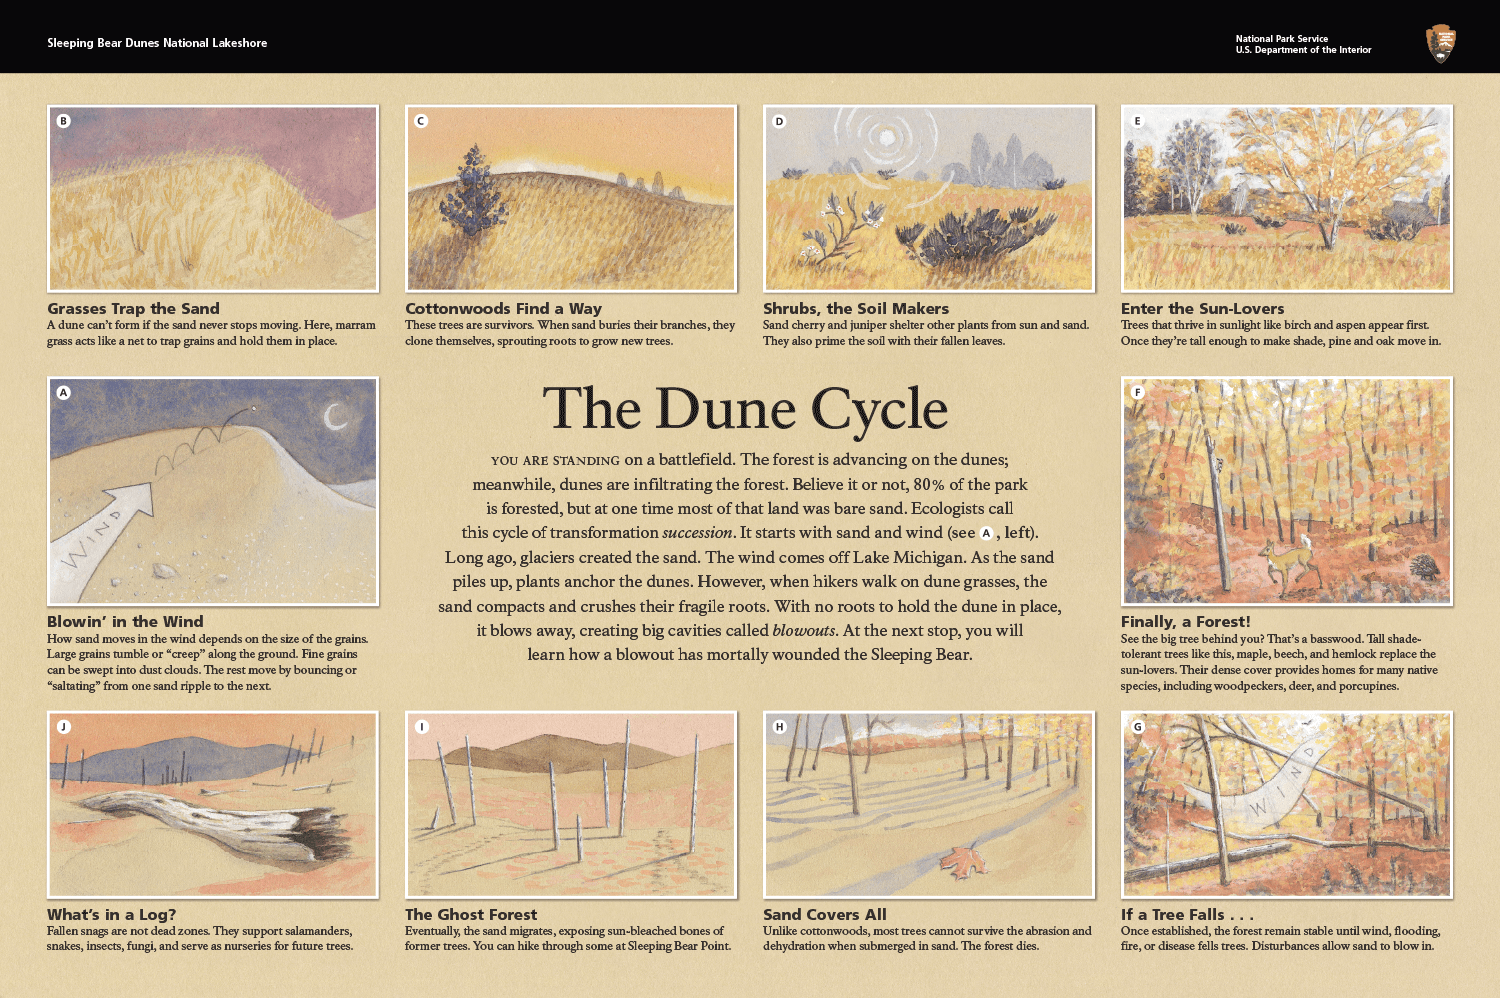 The Dune Cycle